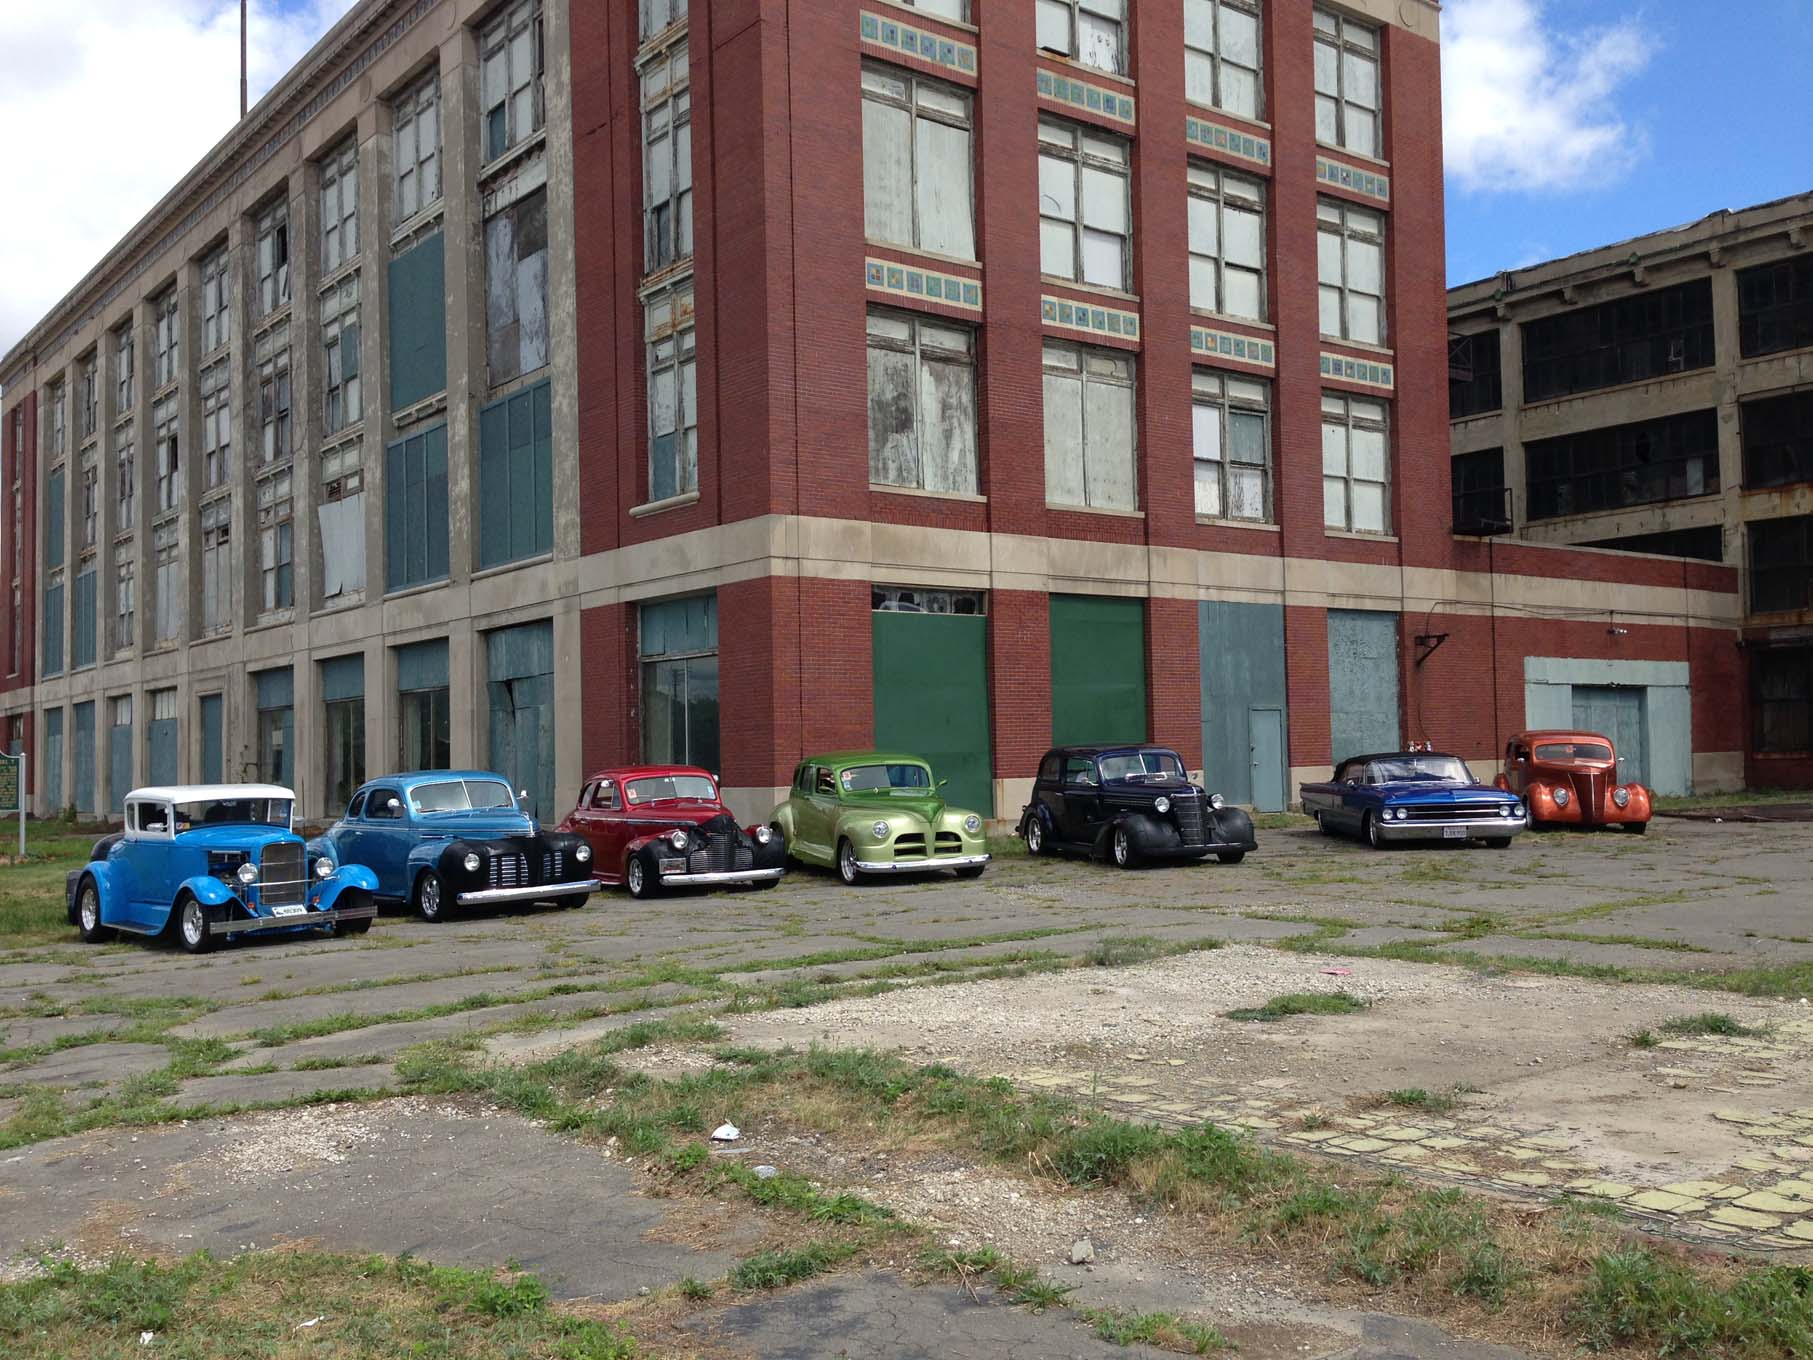 After the successful introduction of the Model T Ford, the assembly of the vehicle was moved to the Highland Park on Woodward Avenue in 1913. This was the first plant of any type to use mass production techniques. In 1925 9,000 Model T vehicles rolled off the assembly line here in one day.